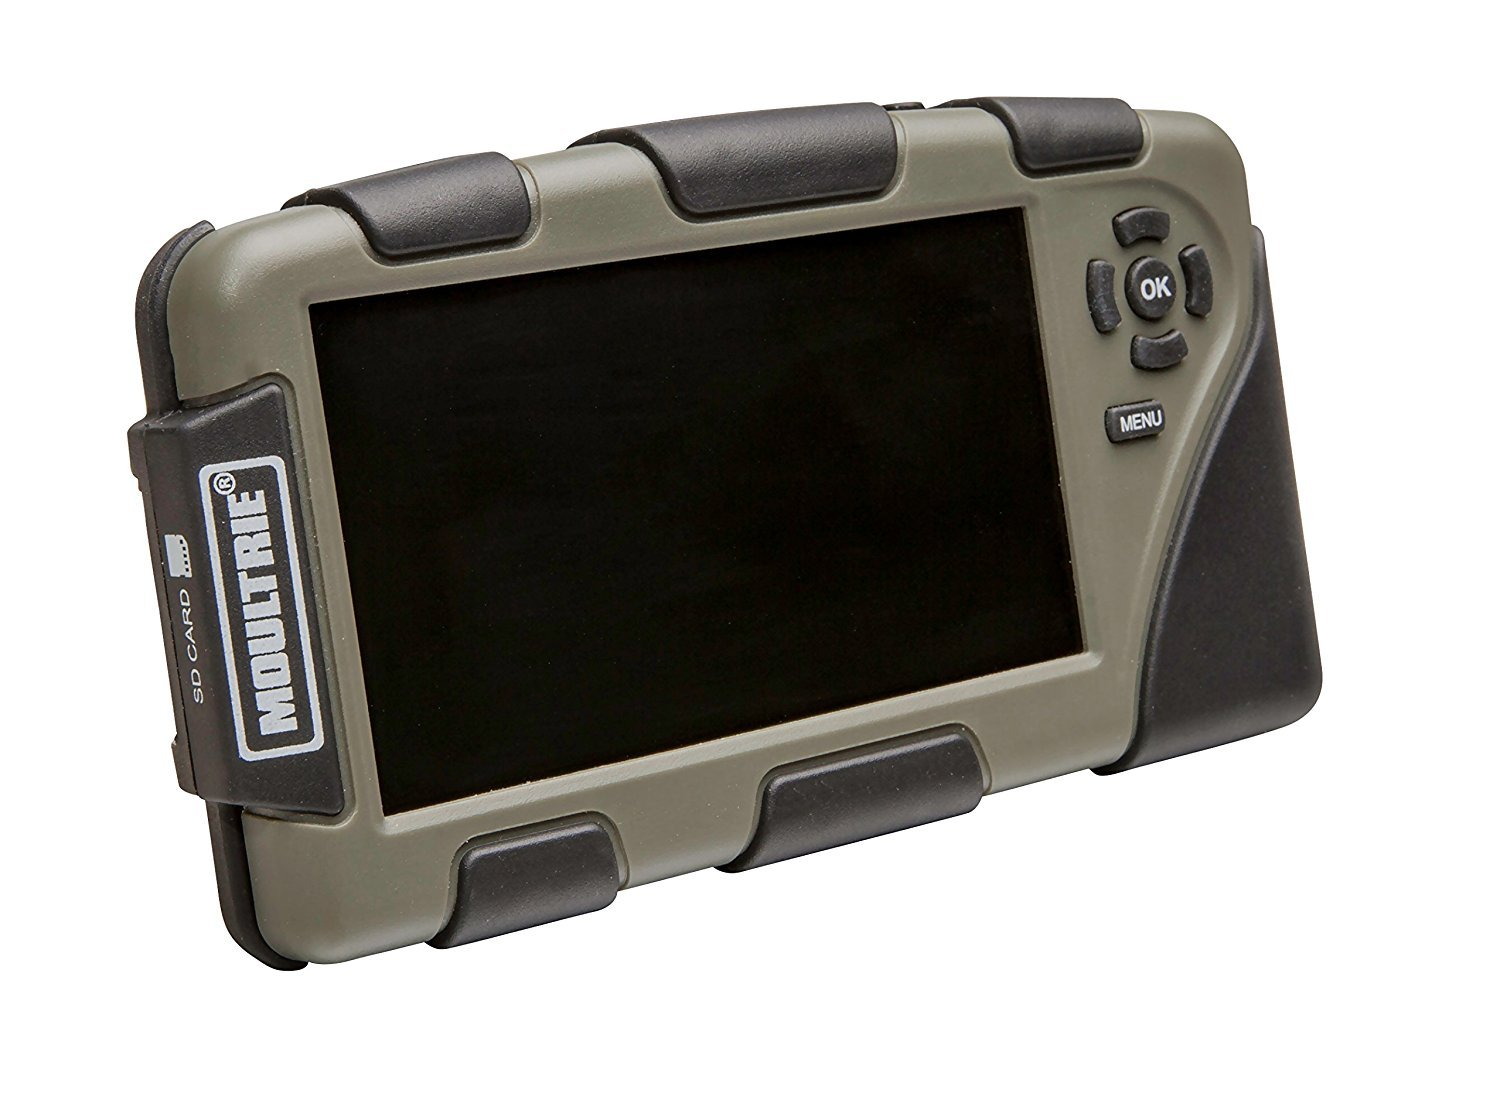 Moultrie 4.3'' Picture and Video Viewer | Accepts up to 32 GB Cards | Micro USB Connection | Headphone Jack by Moultrie